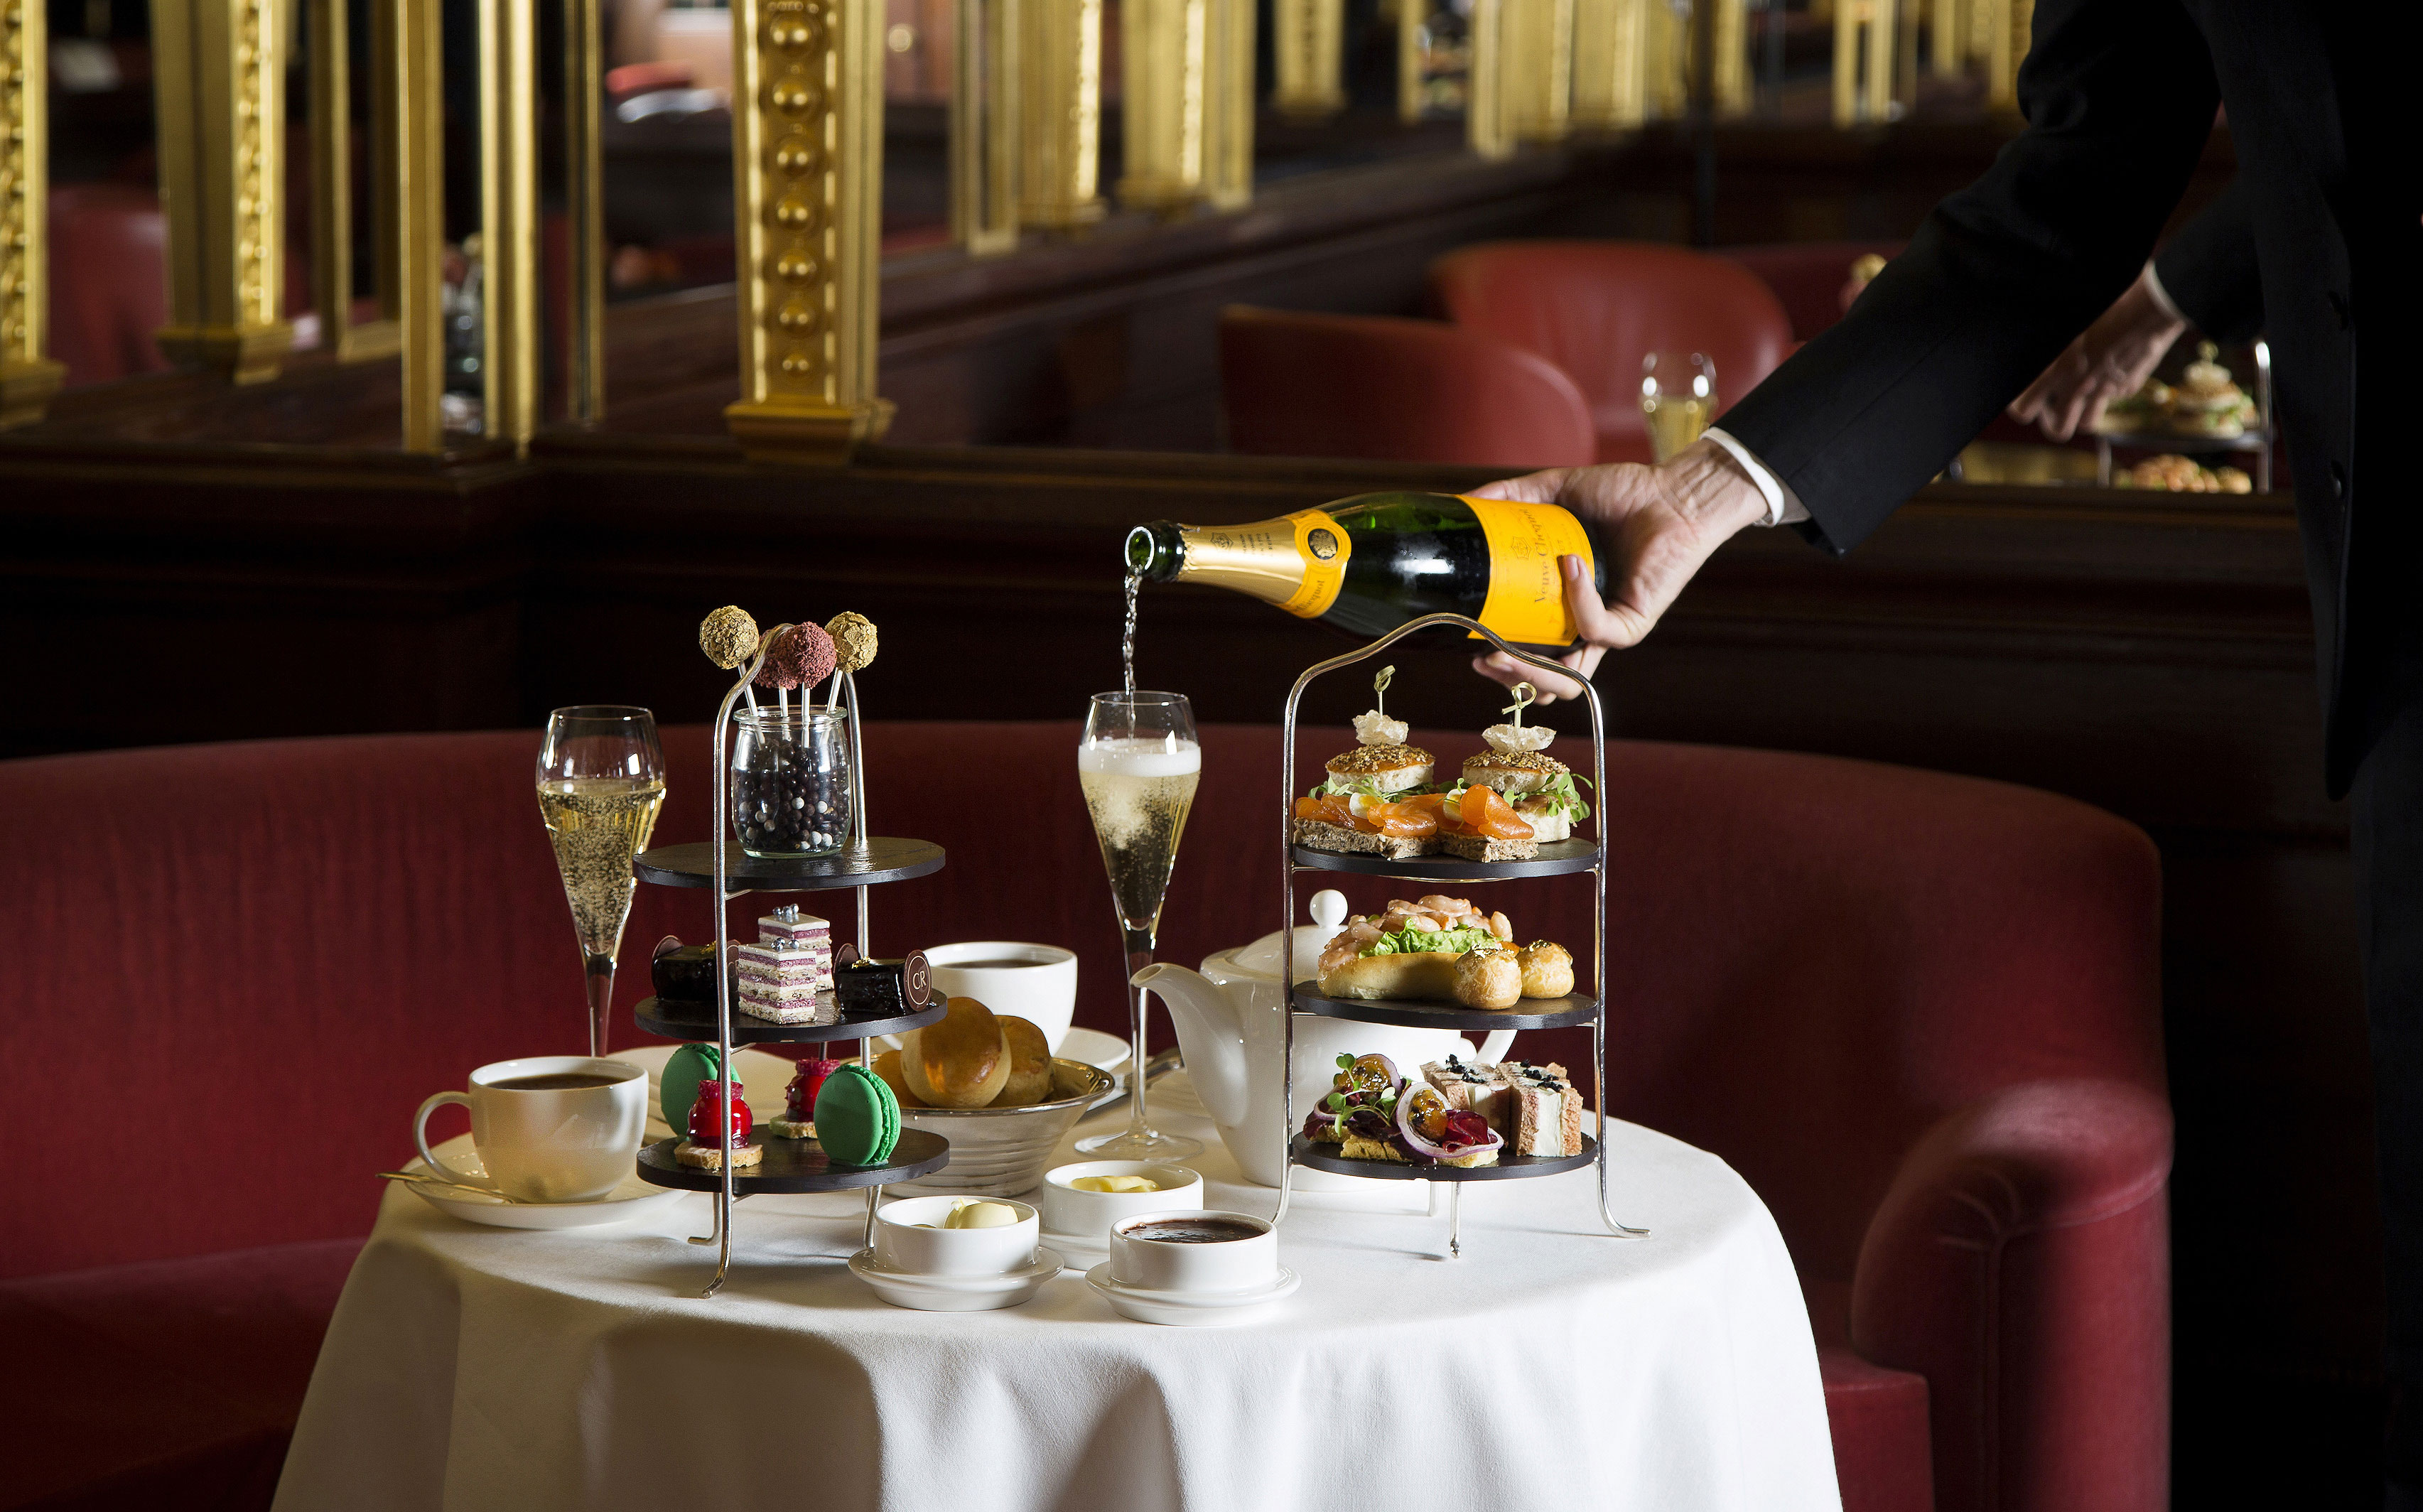 Reserve a table at Afternoon Tea at Hotel Café Royal